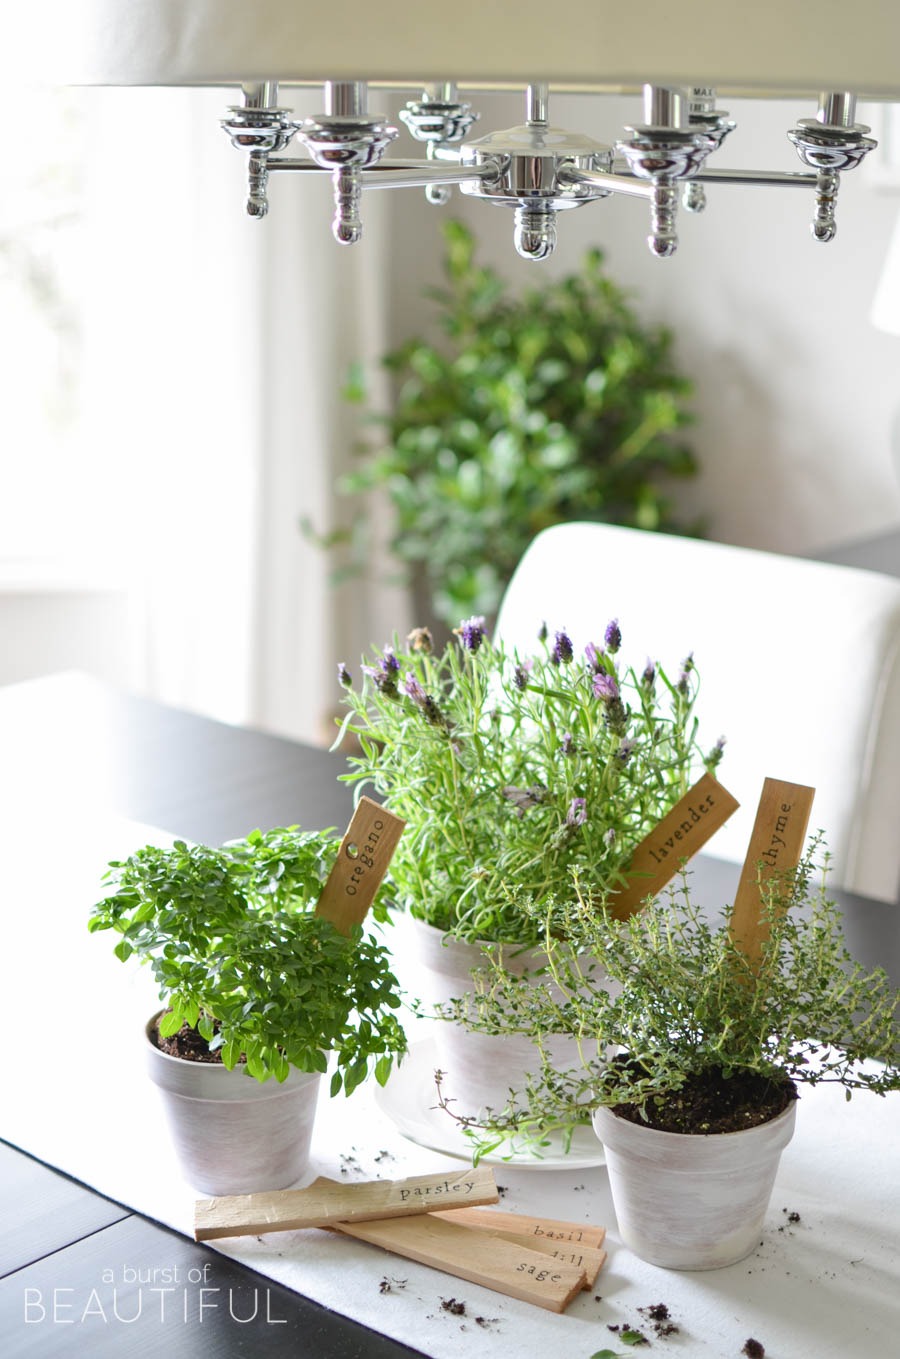 Simple DIY Herb Markers with Free Printables. on herb container gardens, herb garden layout design, herb garden design software, herb landscaping, herb knot garden design, herb garden clip art, herb garden ideas, herb garden design plans, herb garden planning,